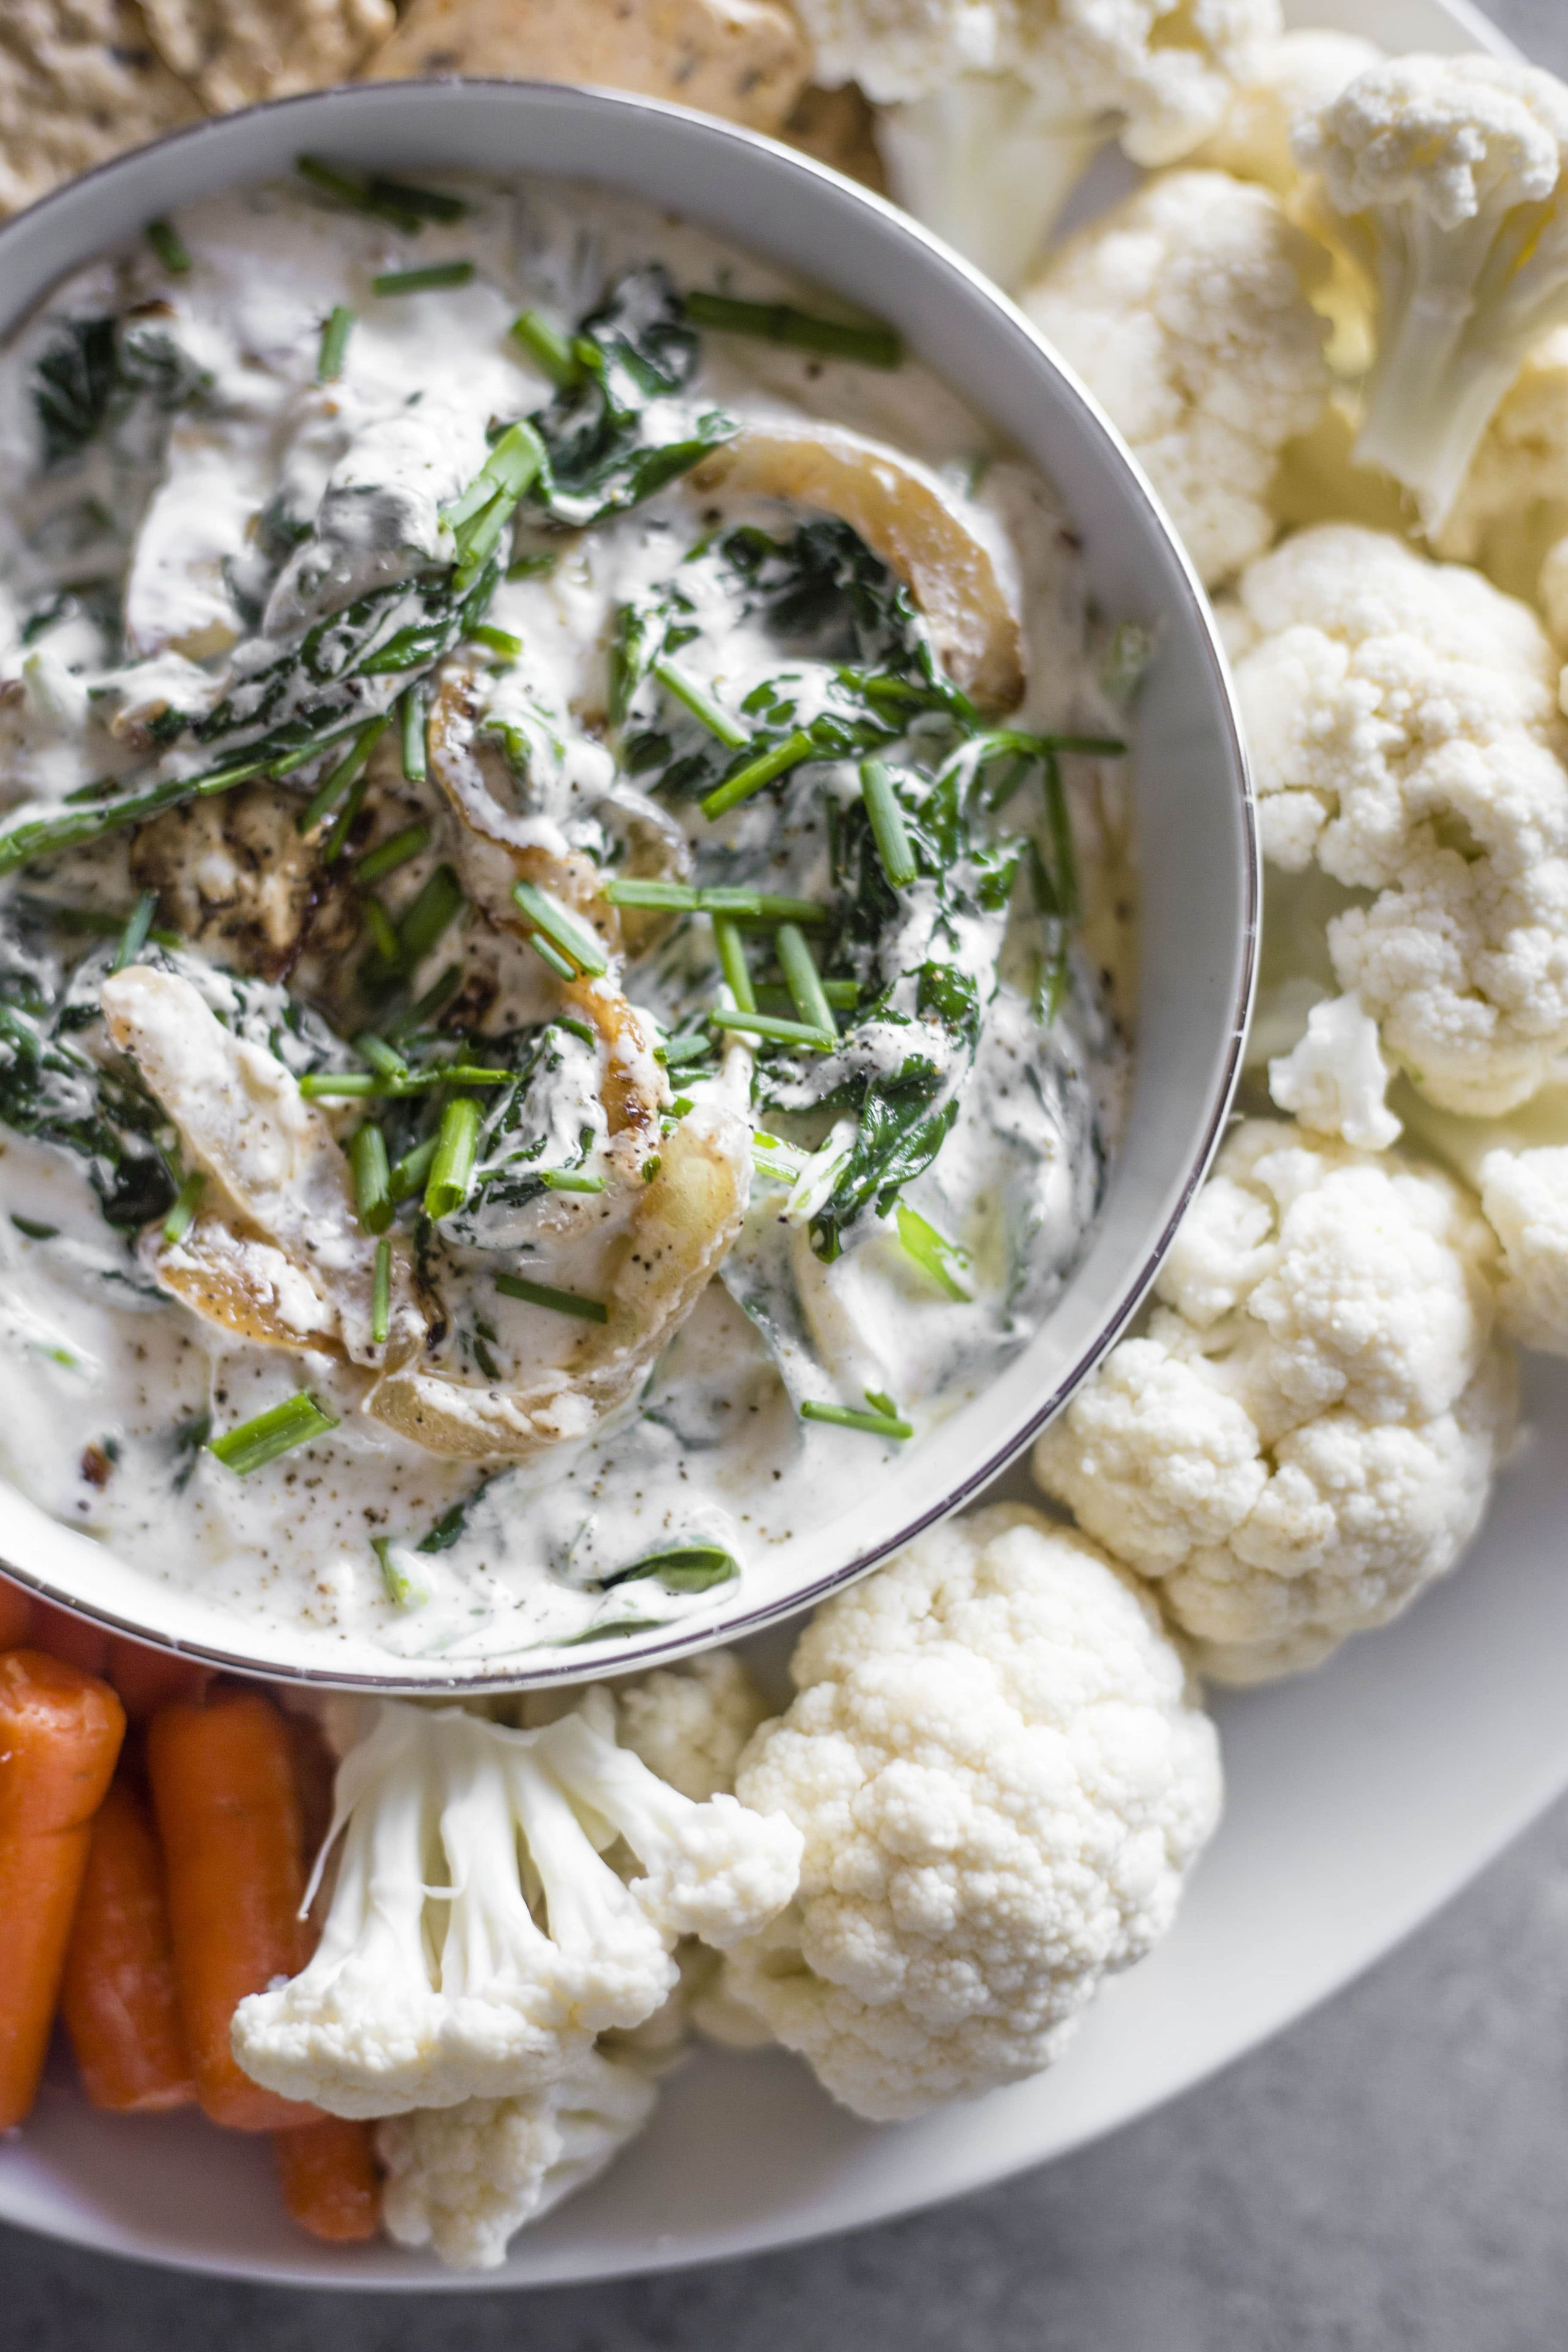 Spinach & Caramelized Onion Dip | A delicious dip that tastes like caramelized onions and is secretly healthy! | thealmondeater.com